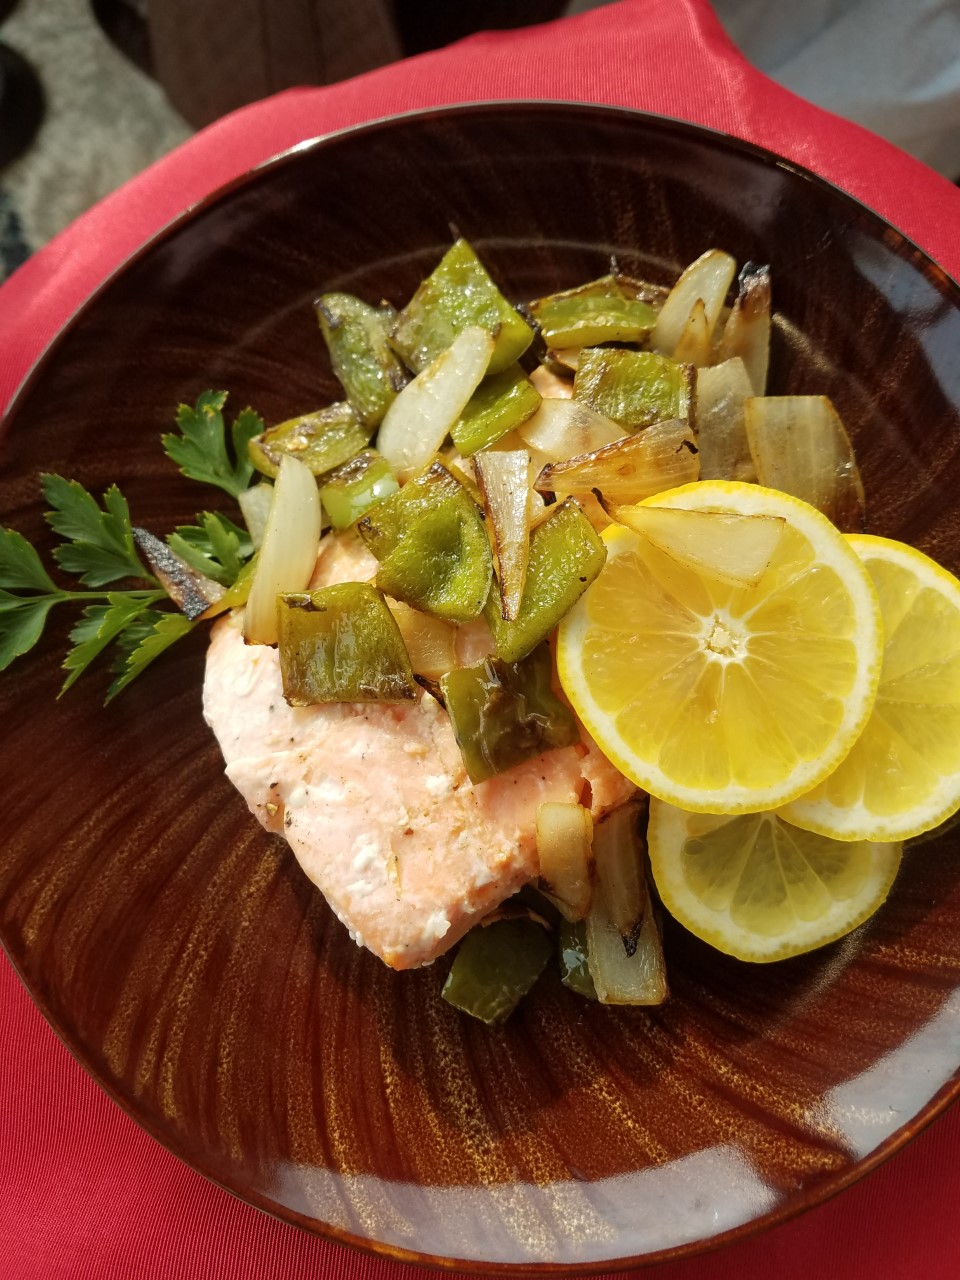 Here's an easy recipe for quick weeknight dinners, featuring salmon, bell peppers, parsley, and lemon. It's ready in about 30 minutes.